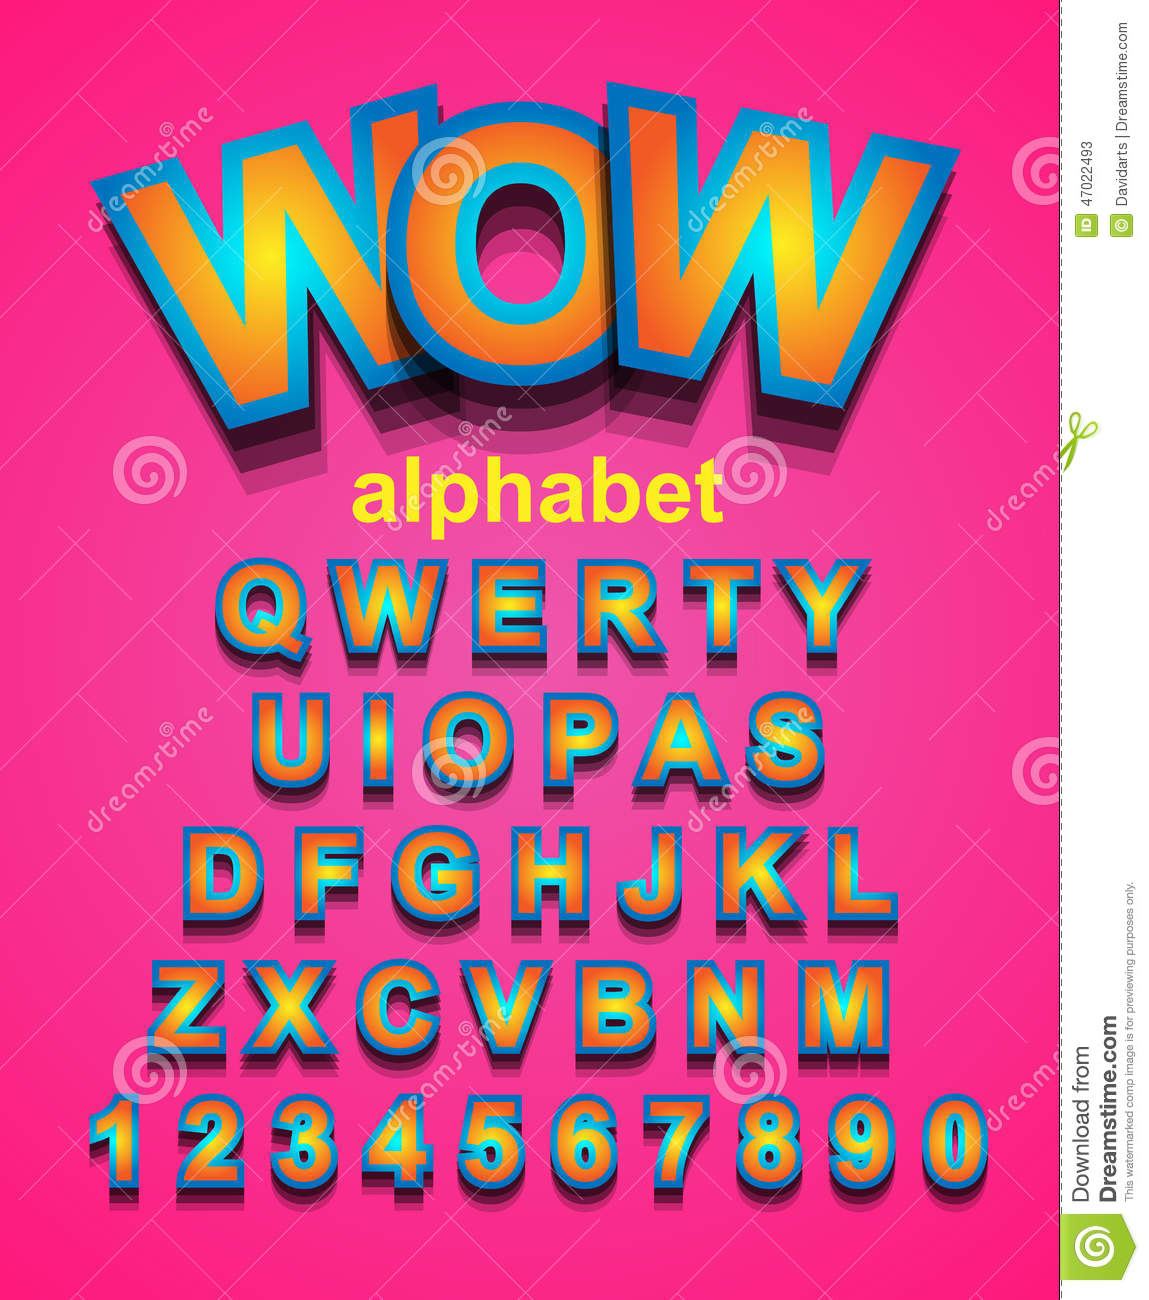 Colorful Alphapet Font To Use For Children's Parties